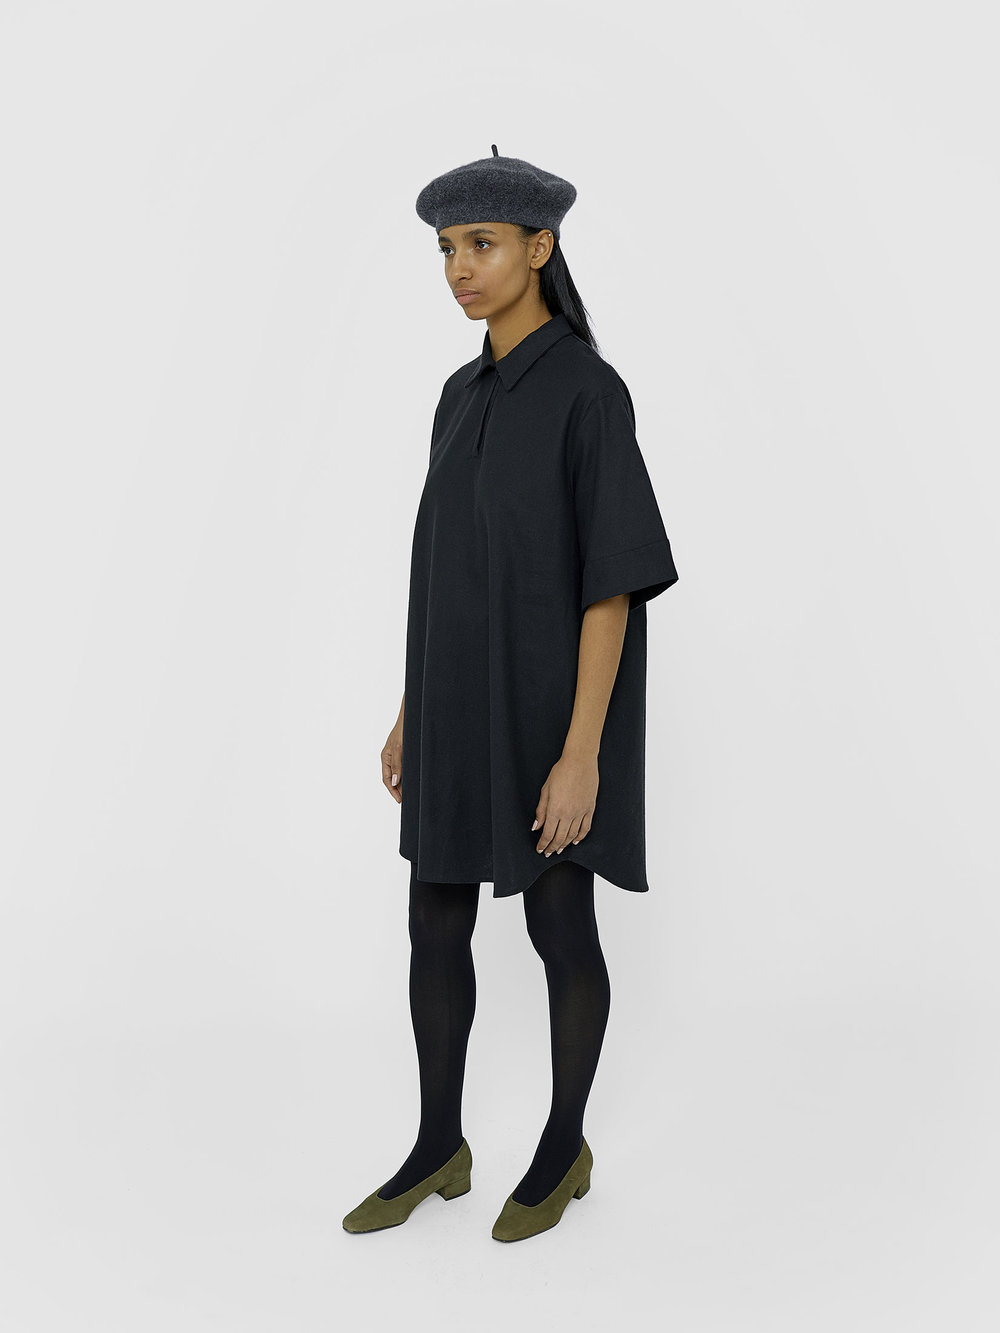 tunic-unisex-black-kirsten-one-dna-01.jpg